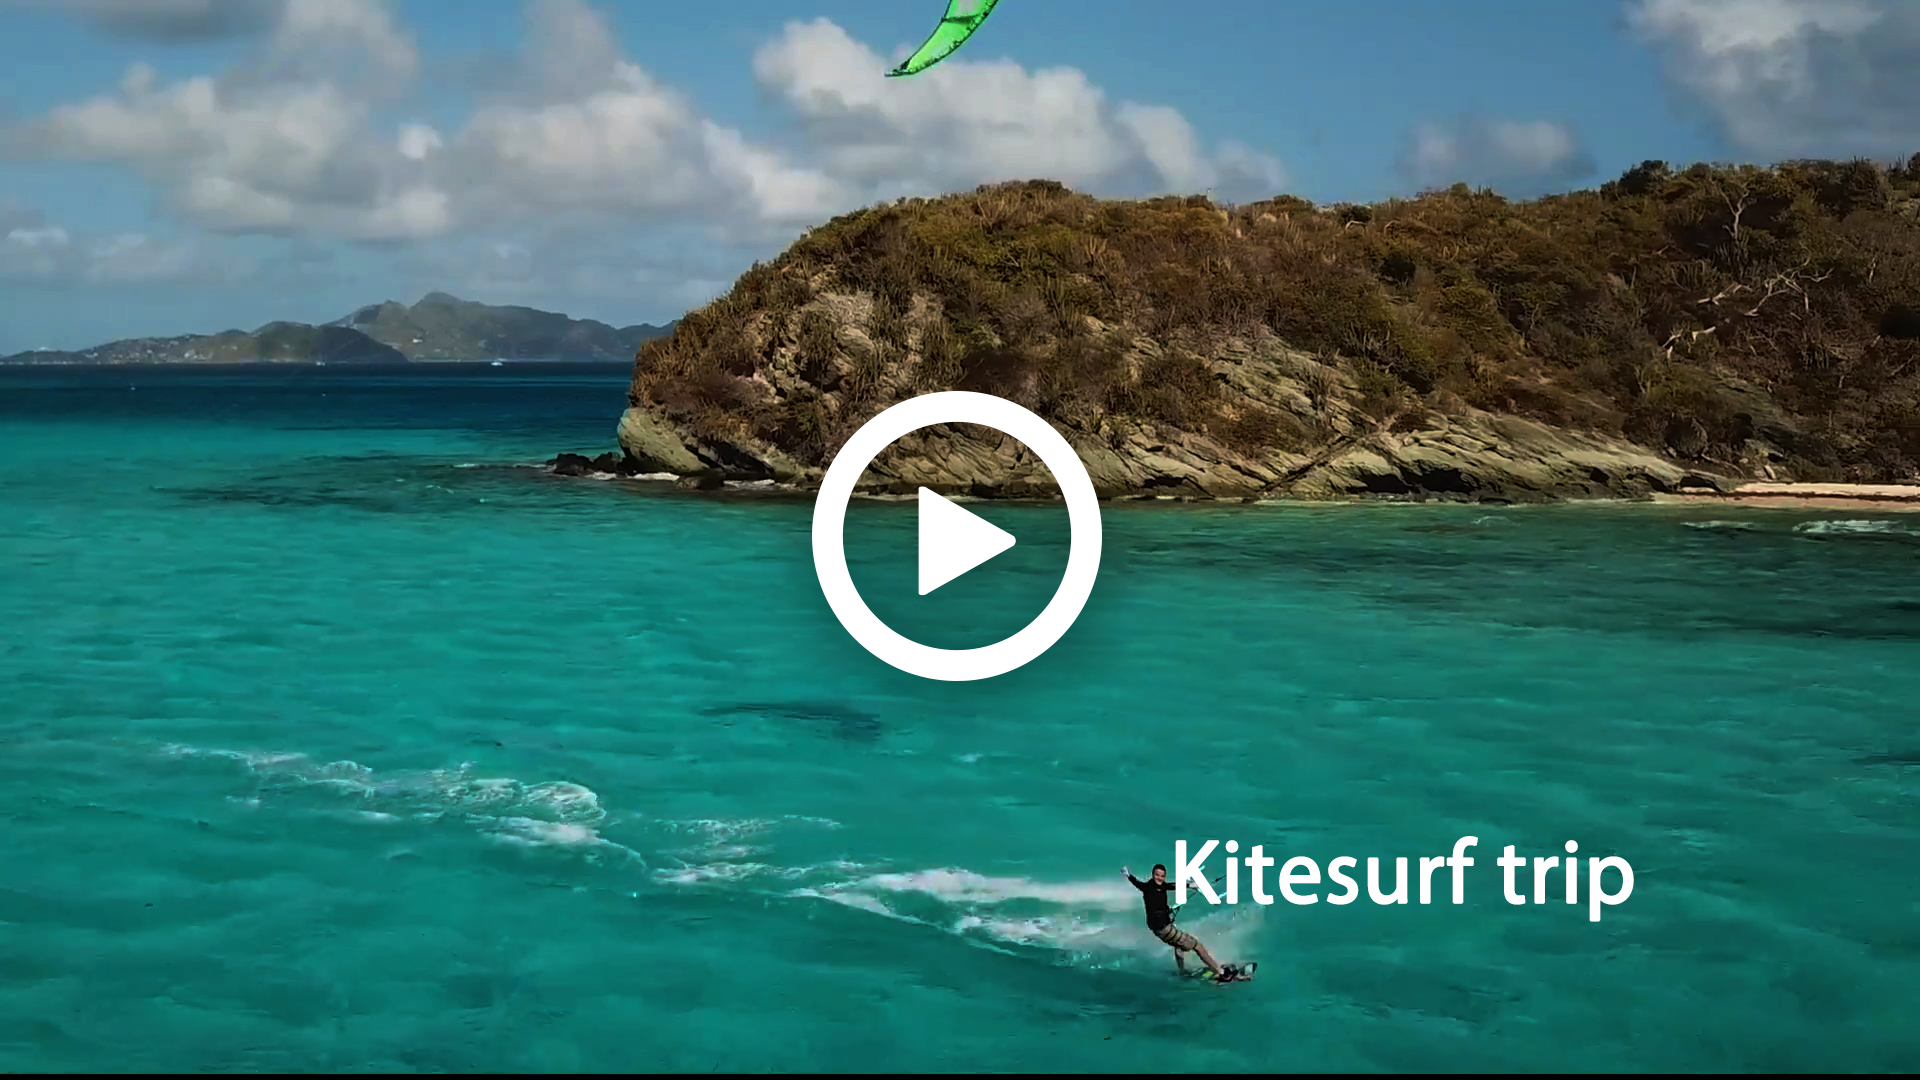 Sailing video to sale - Kitetrip video to buy